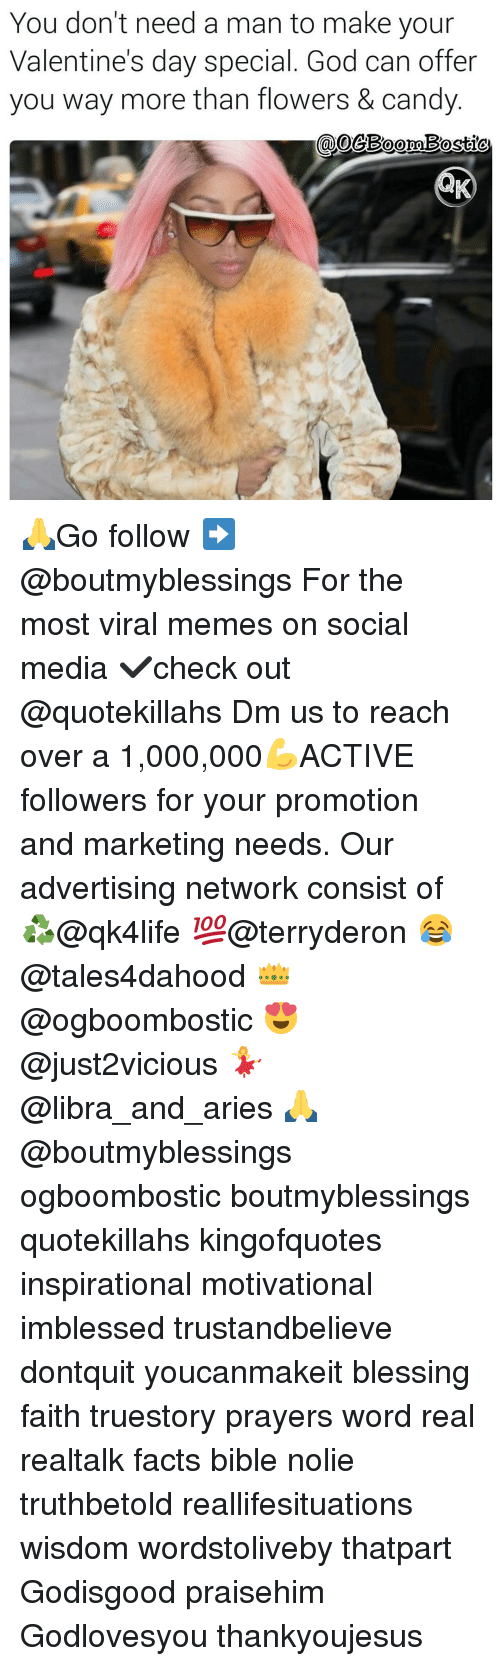 Memes, 🤖, and Bibled: You don't need a man to make your  Valentine's day special. God can offer  you way more than flowers & candy 🙏Go follow ➡@boutmyblessings For the most viral memes on social media ✔check out @quotekillahs Dm us to reach over a 1,000,000💪ACTIVE followers for your promotion and marketing needs. Our advertising network consist of ♻@qk4life 💯@terryderon 😂@tales4dahood 👑@ogboombostic 😍@just2vicious 💃@libra_and_aries 🙏@boutmyblessings ogboombostic boutmyblessings quotekillahs kingofquotes inspirational motivational imblessed trustandbelieve dontquit youcanmakeit blessing faith truestory prayers word real realtalk facts bible nolie truthbetold reallifesituations wisdom wordstoliveby thatpart Godisgood praisehim Godlovesyou thankyoujesus